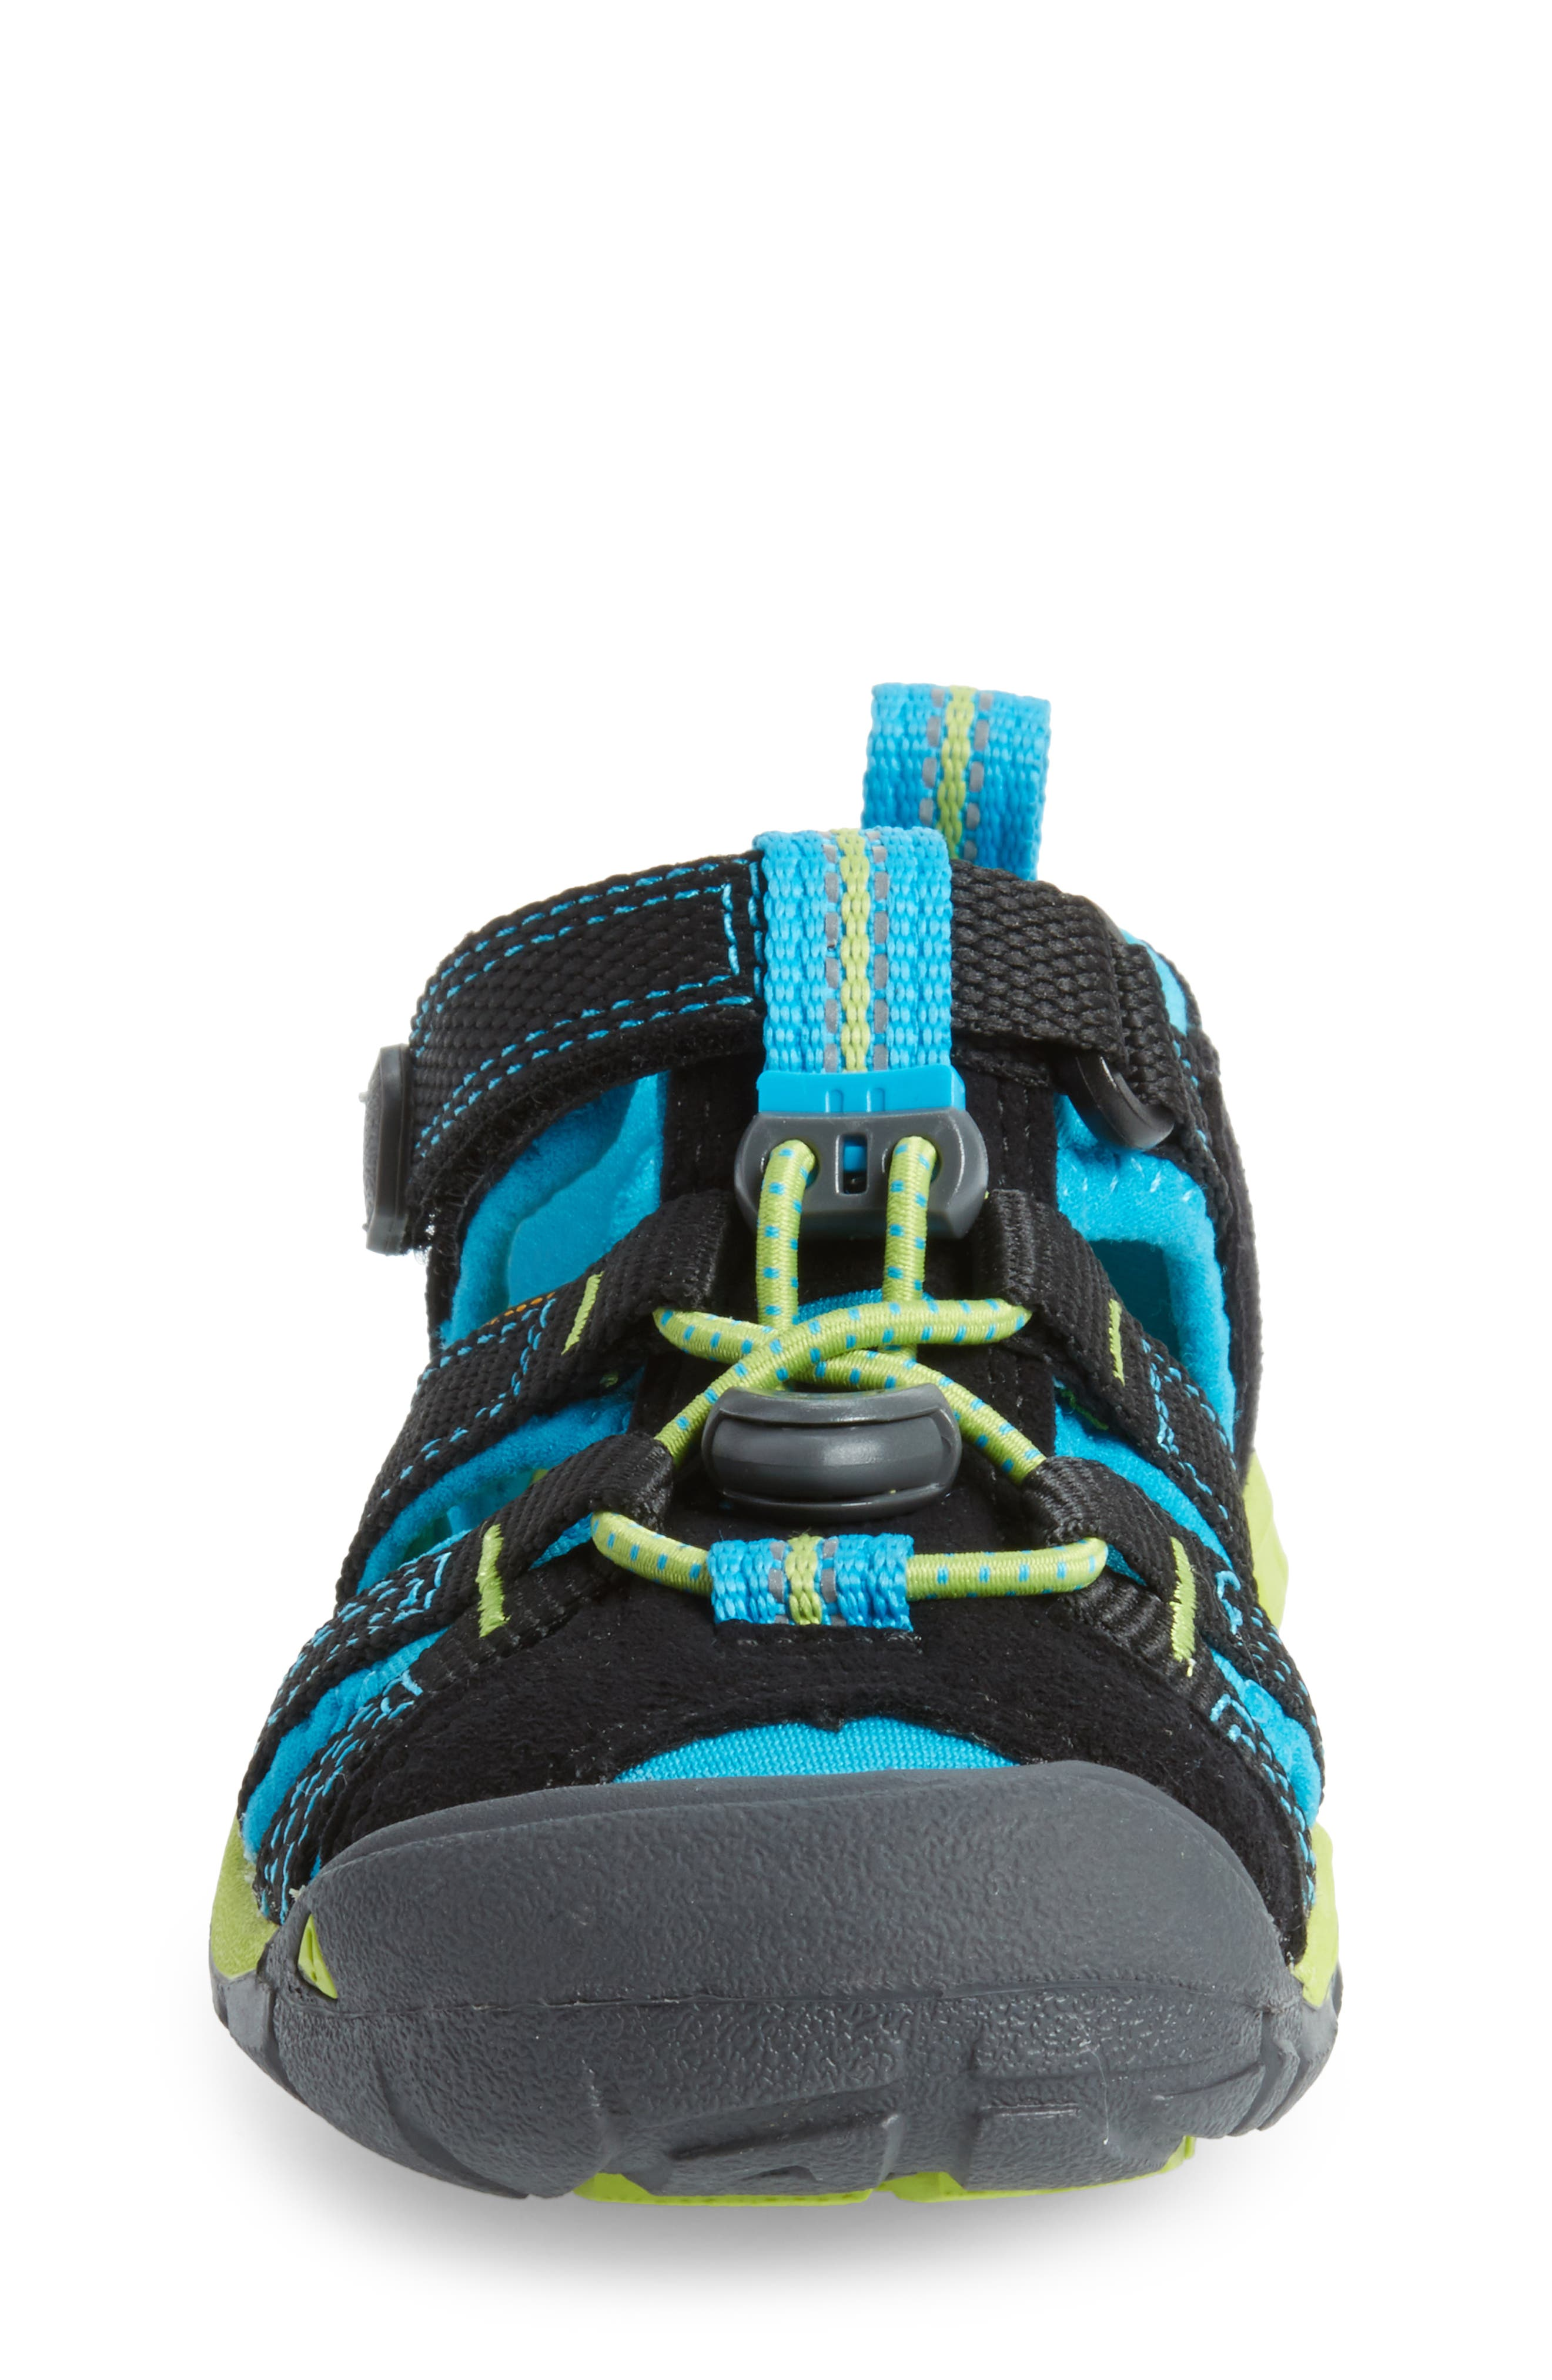 KEEN, 'Seacamp II' Water Friendly Sandal, Alternate thumbnail 4, color, BLACK/ BLUE DANUBE